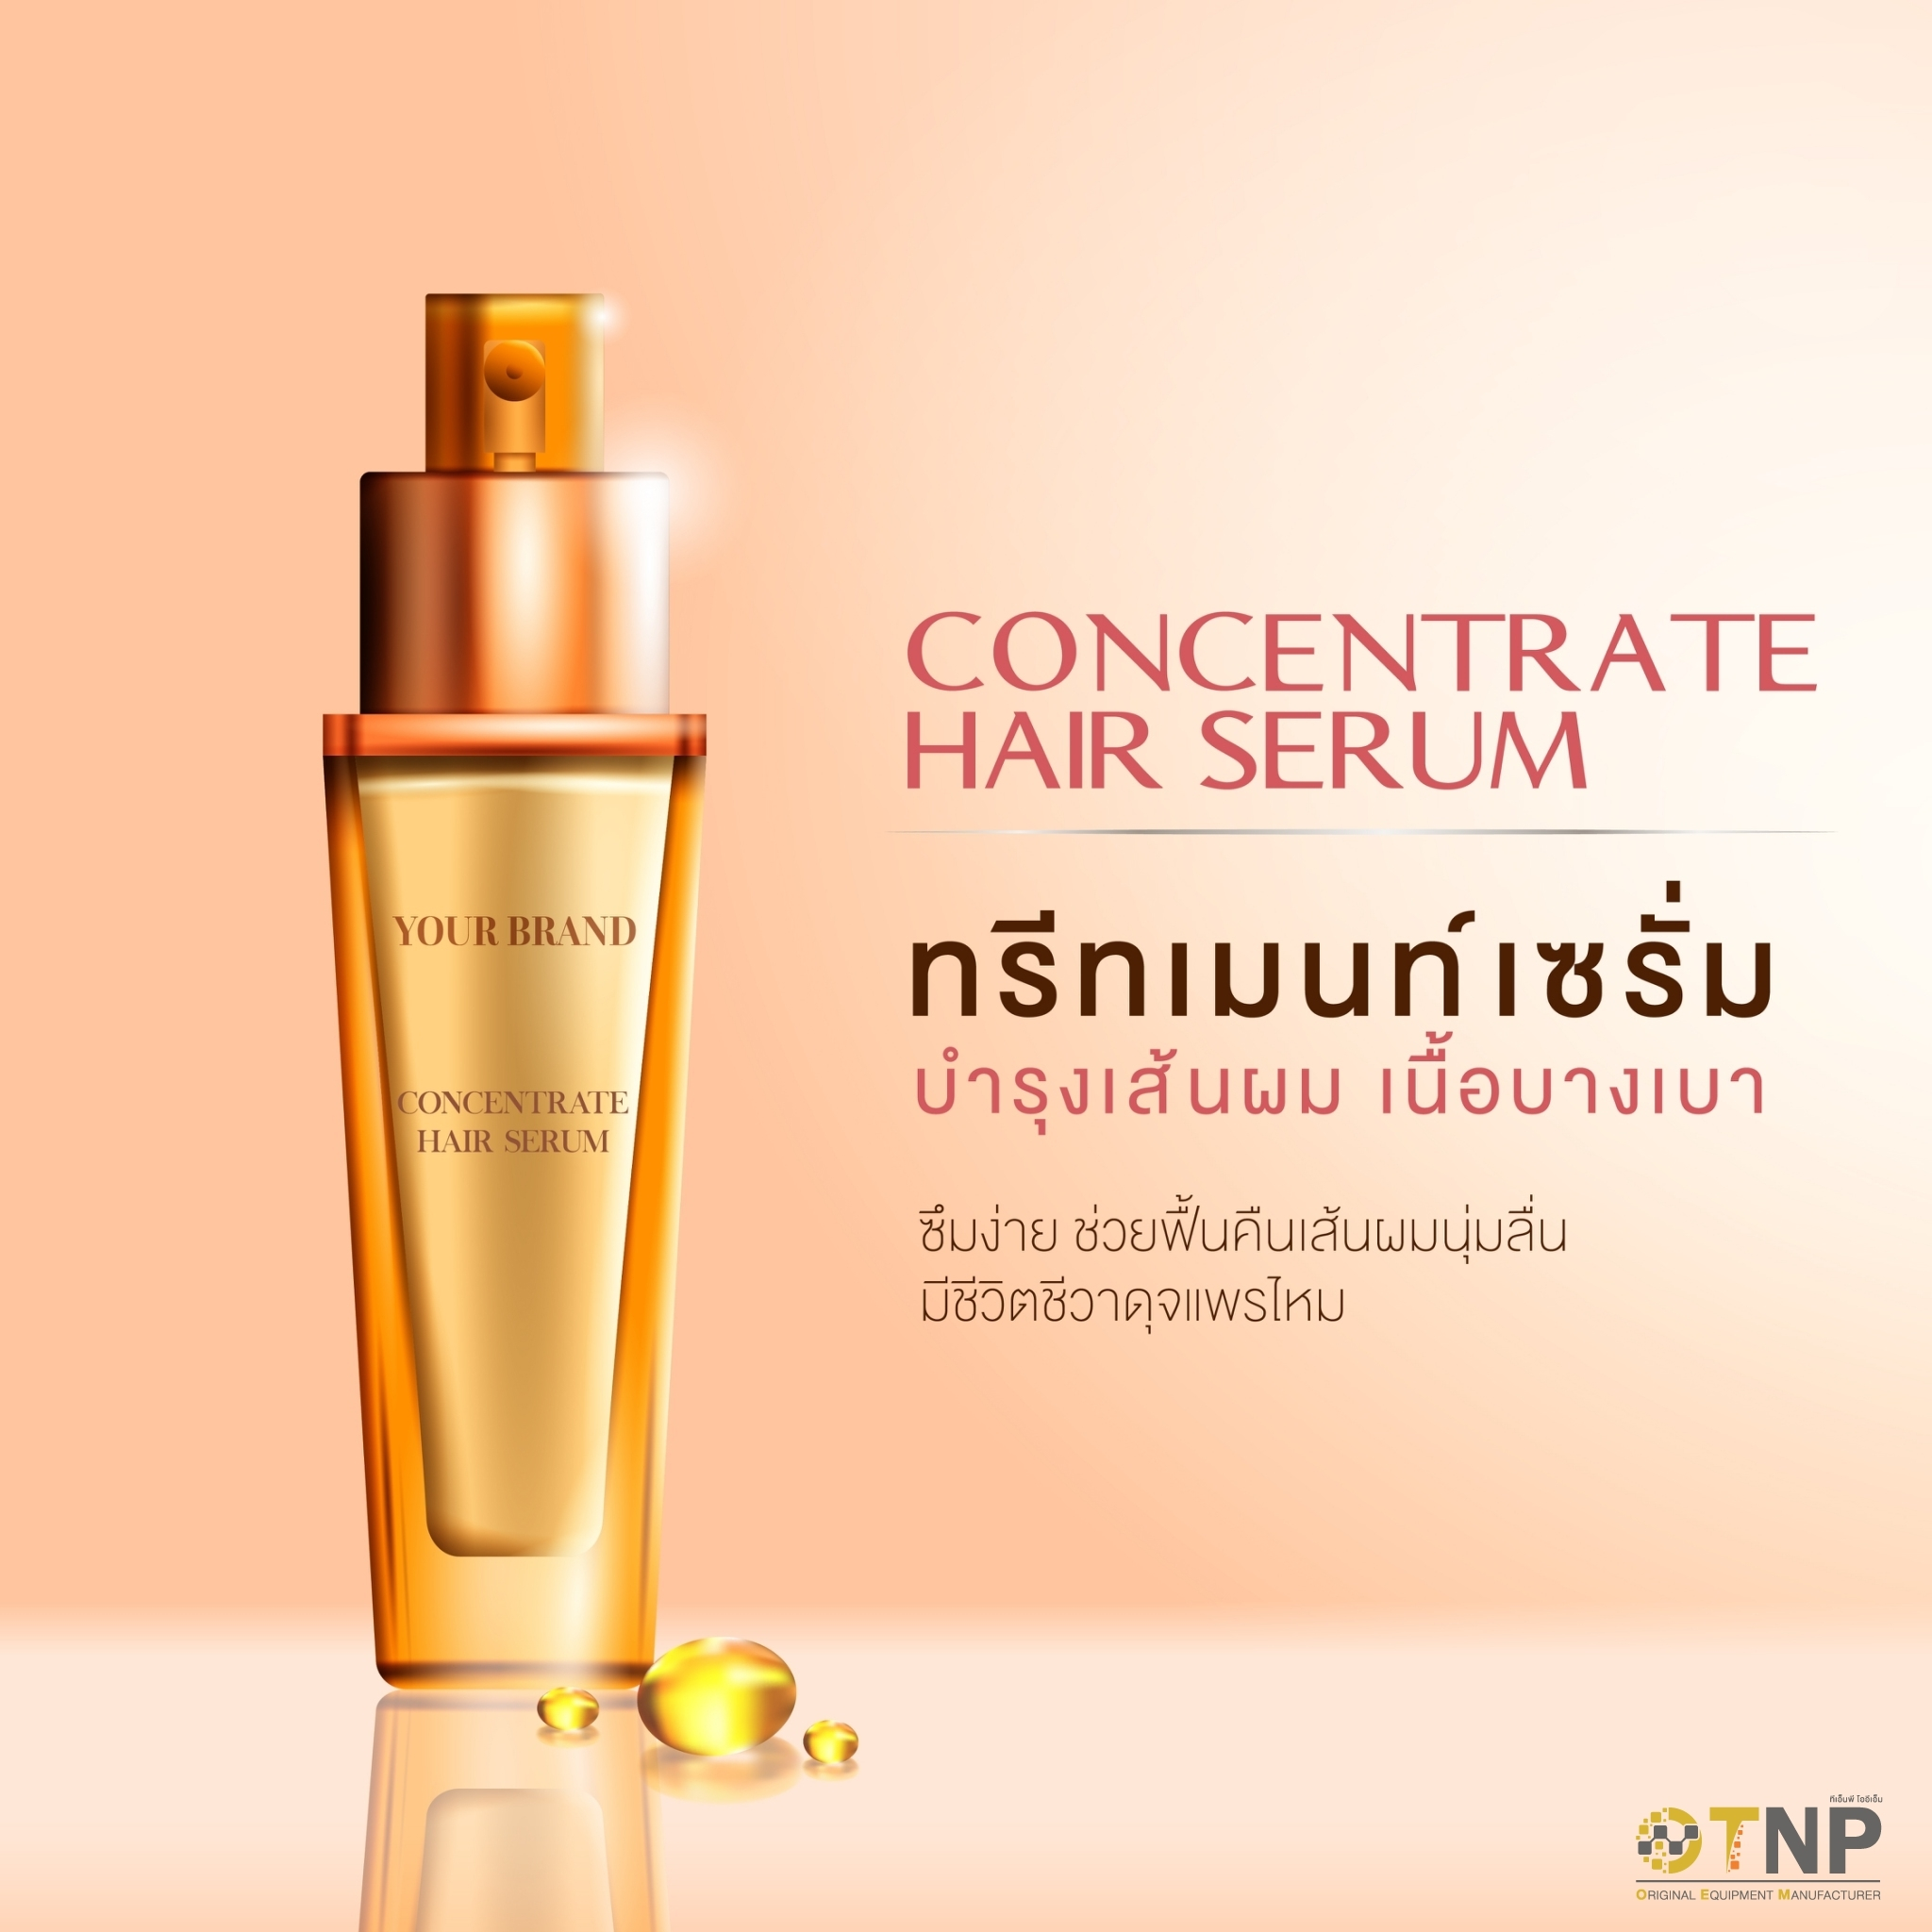 Concentrate Hair Serum